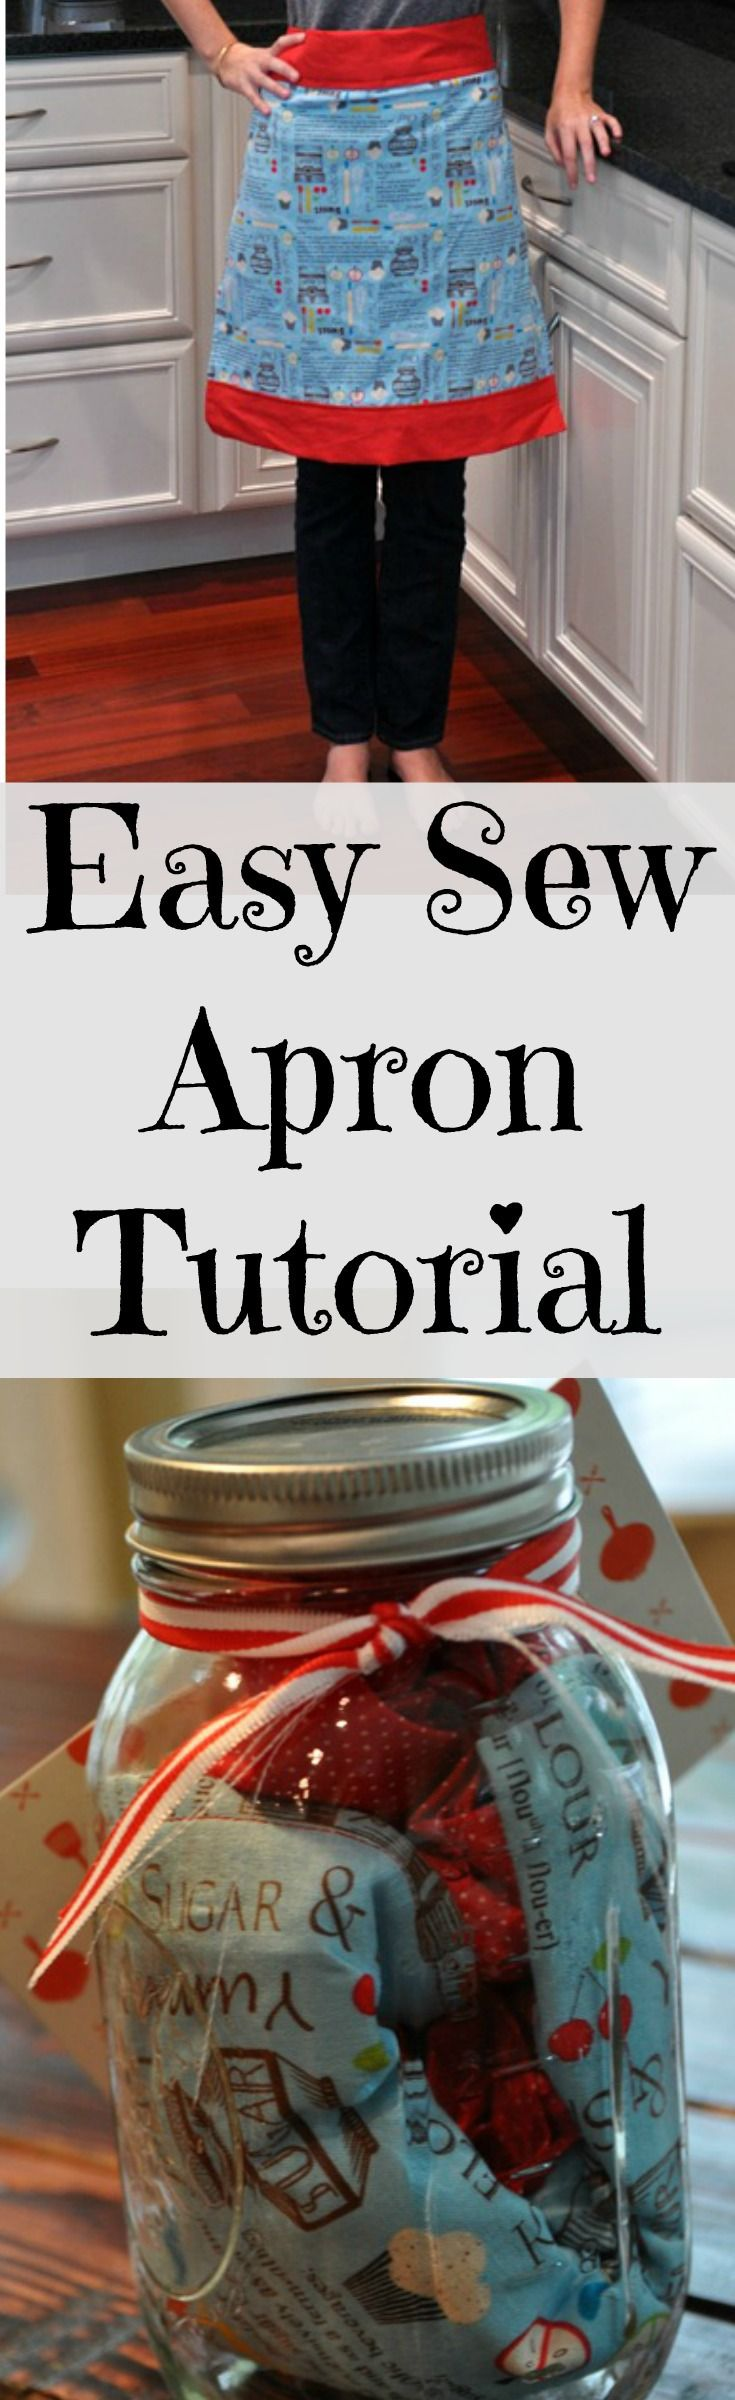 best images about sew what on pinterest